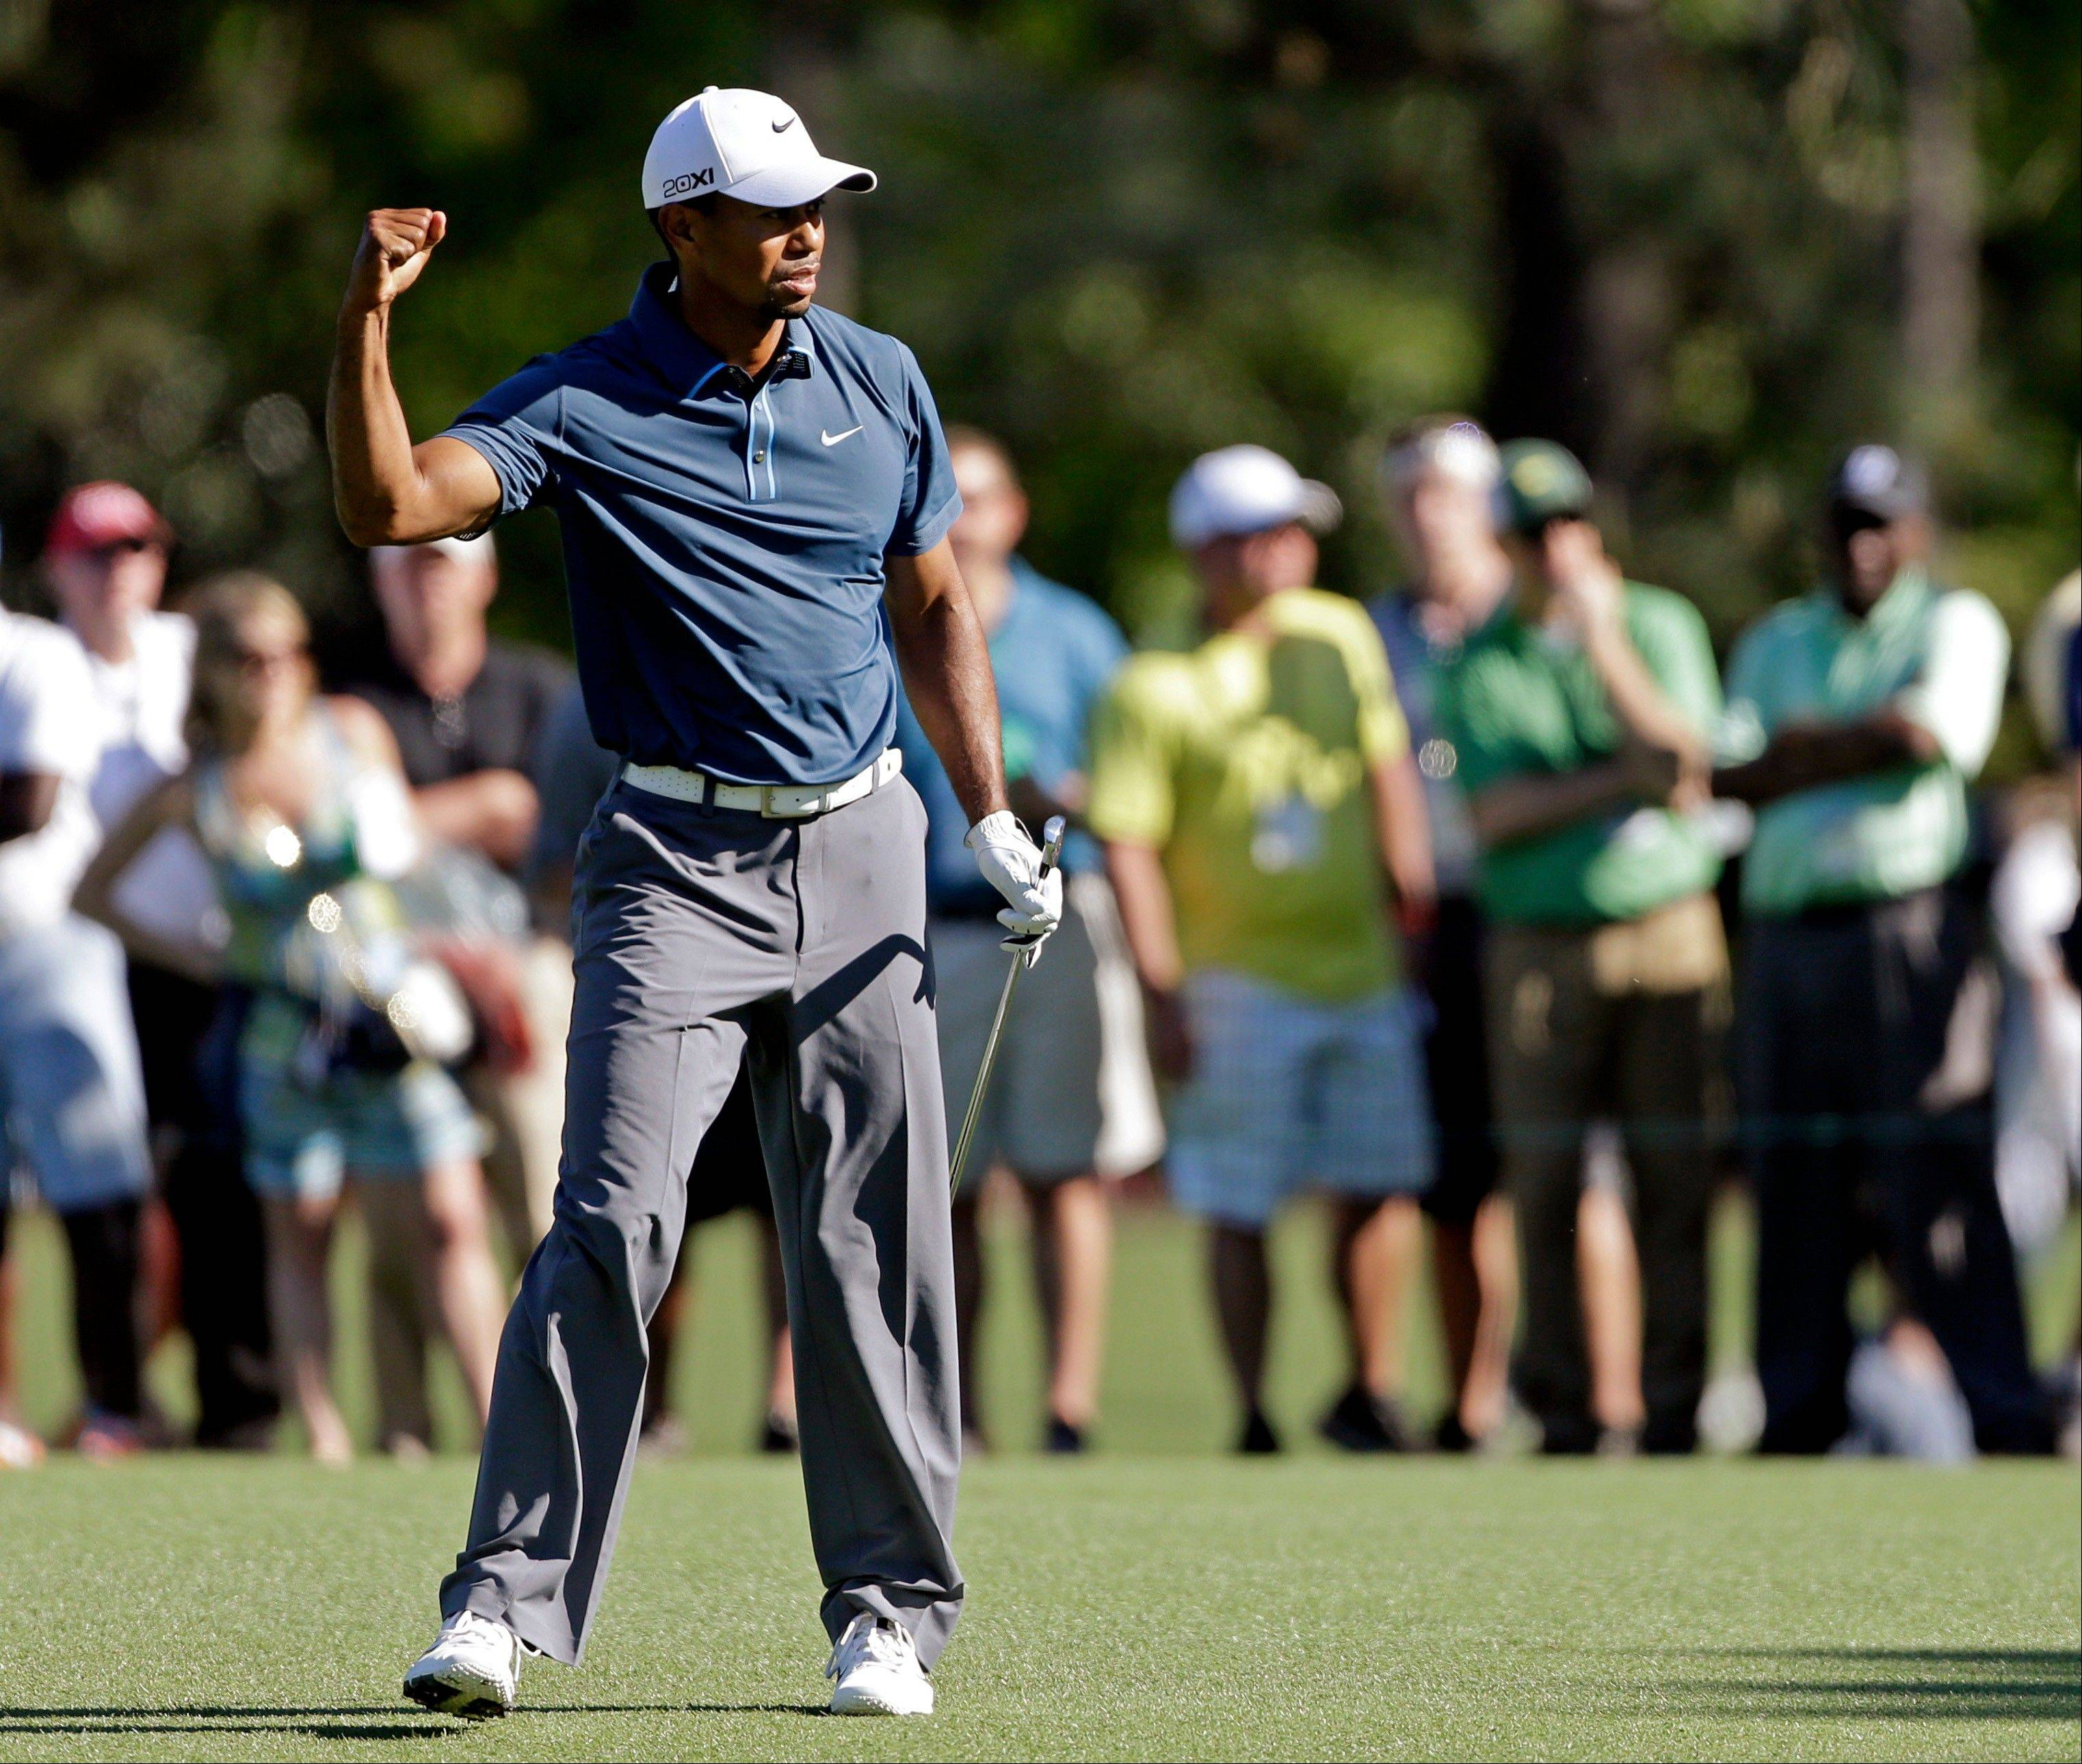 Tiger Woods reacts to his approach shot to the 15th green during the third round of the Masters on Saturday. Later he was assessed a two-stroke penalty by the Masters committee, which did not disqualify him.